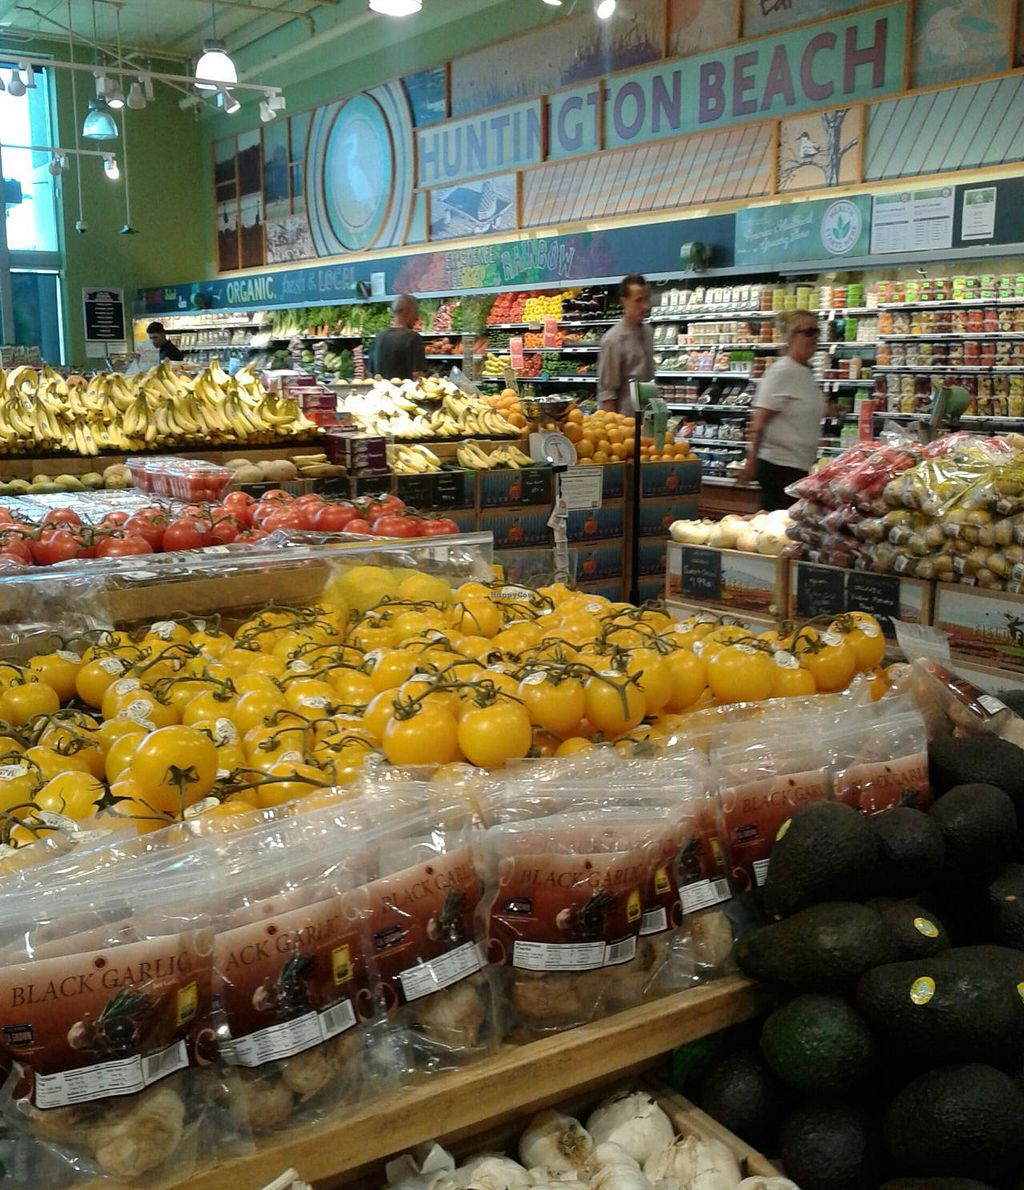 "Photo of Whole Foods Market  by <a href=""/members/profile/chobesoy"">chobesoy</a> <br/>produce!  <br/> May 16, 2014  - <a href='/contact/abuse/image/27472/70110'>Report</a>"